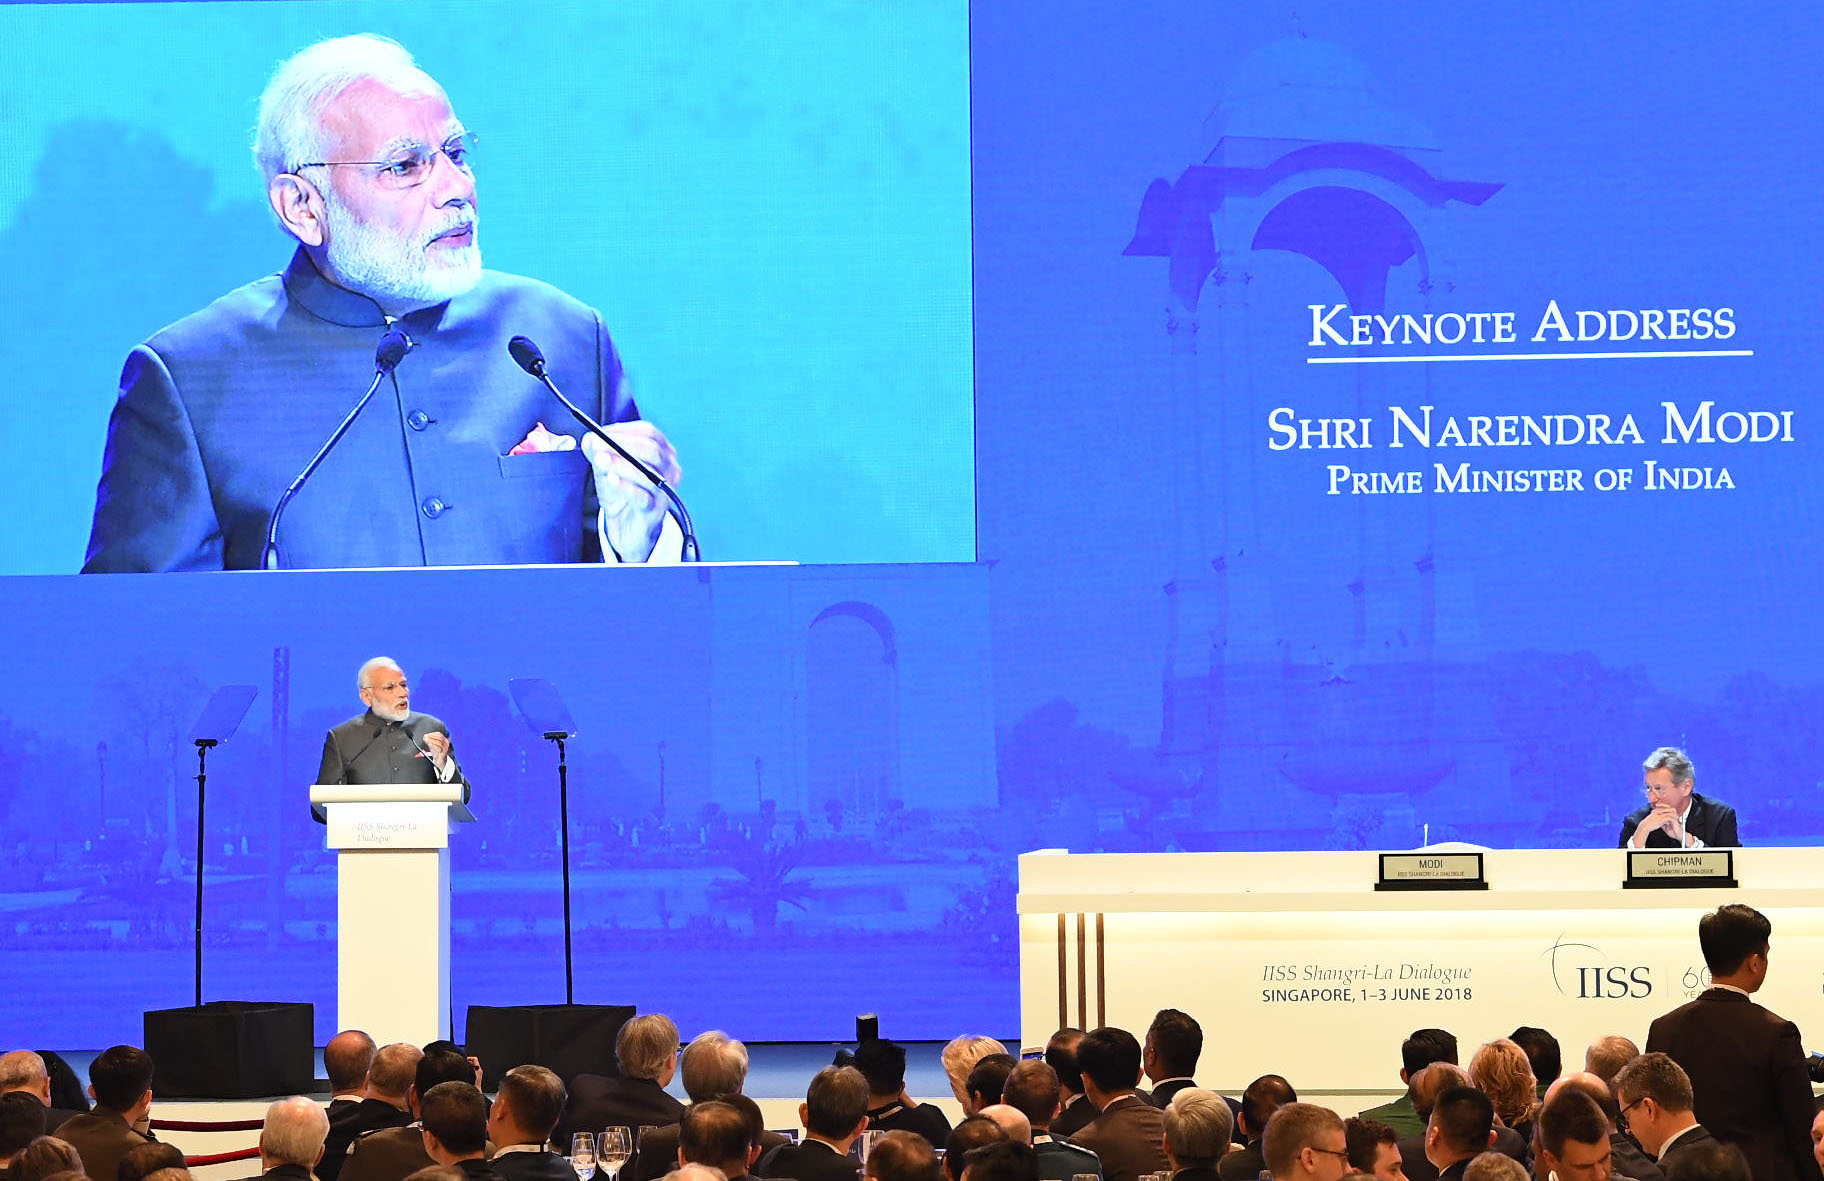 Prime Minister Narendra Modi delivering the Keynote Address at Shangri La Dialogue, in Singapore on June 01, 2018. (Photo courtesy: PMO)